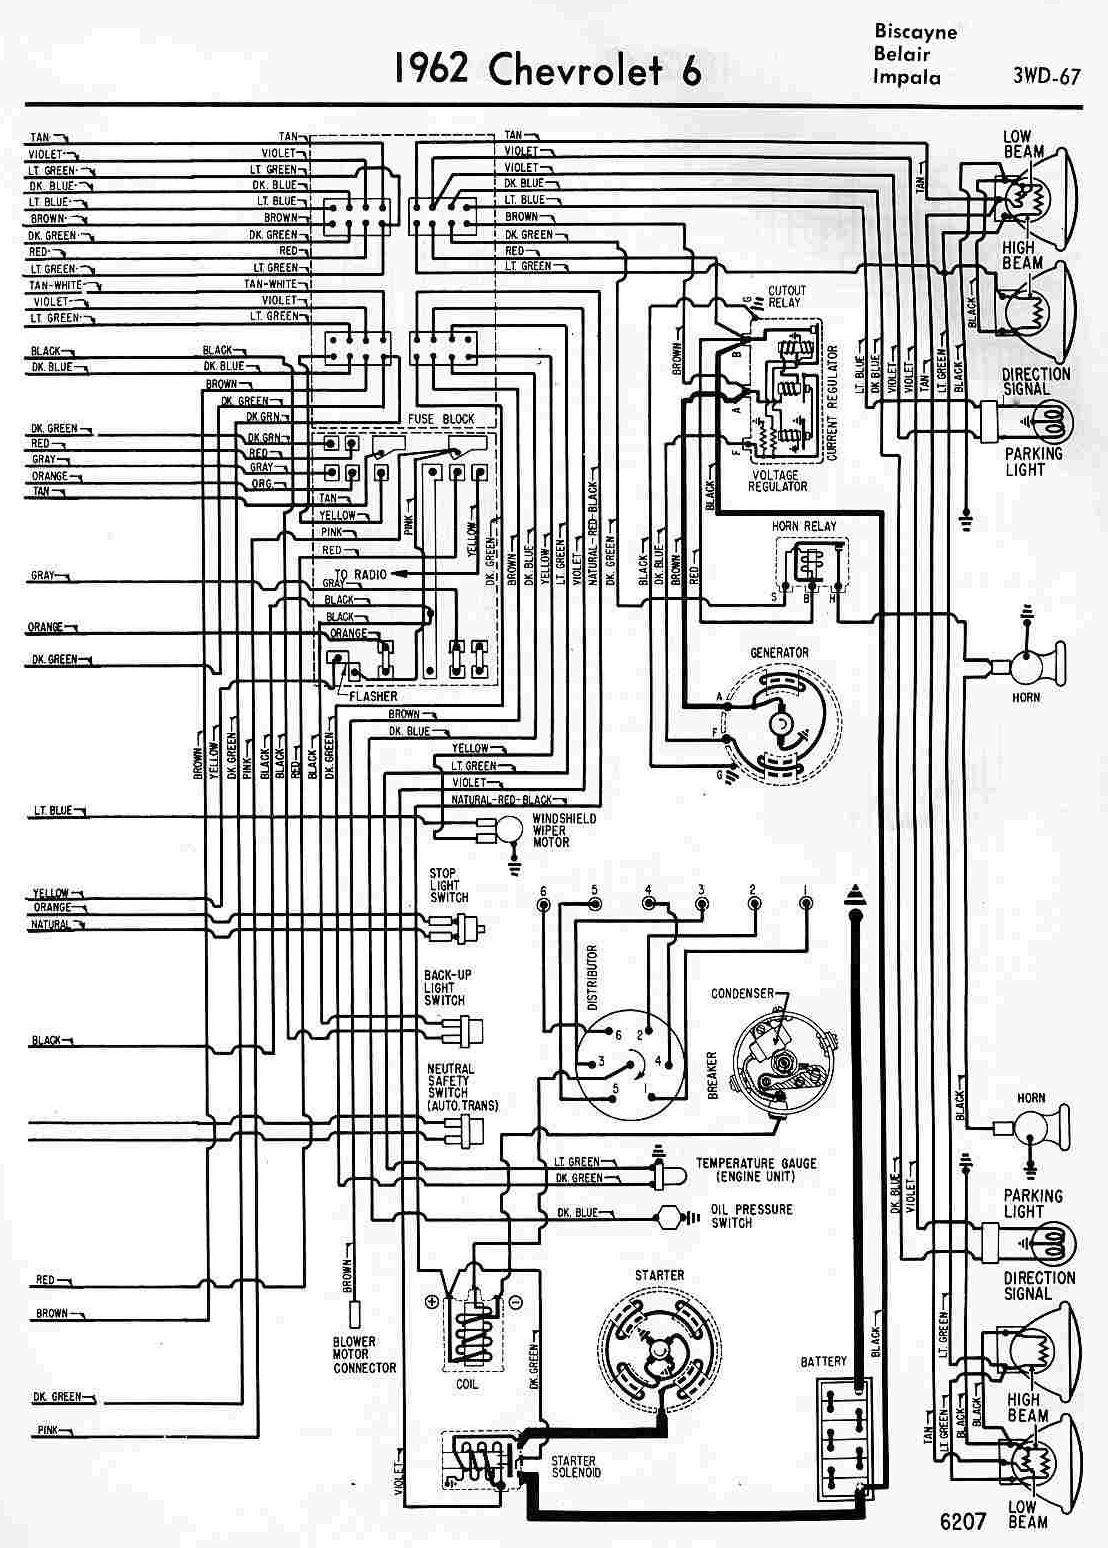 1962+Chevrolet+6+Biscayne%252C+Belair+and+Impala+Wiring+Diagram december 2011 all about wiring diagrams 1961 Impala at creativeand.co